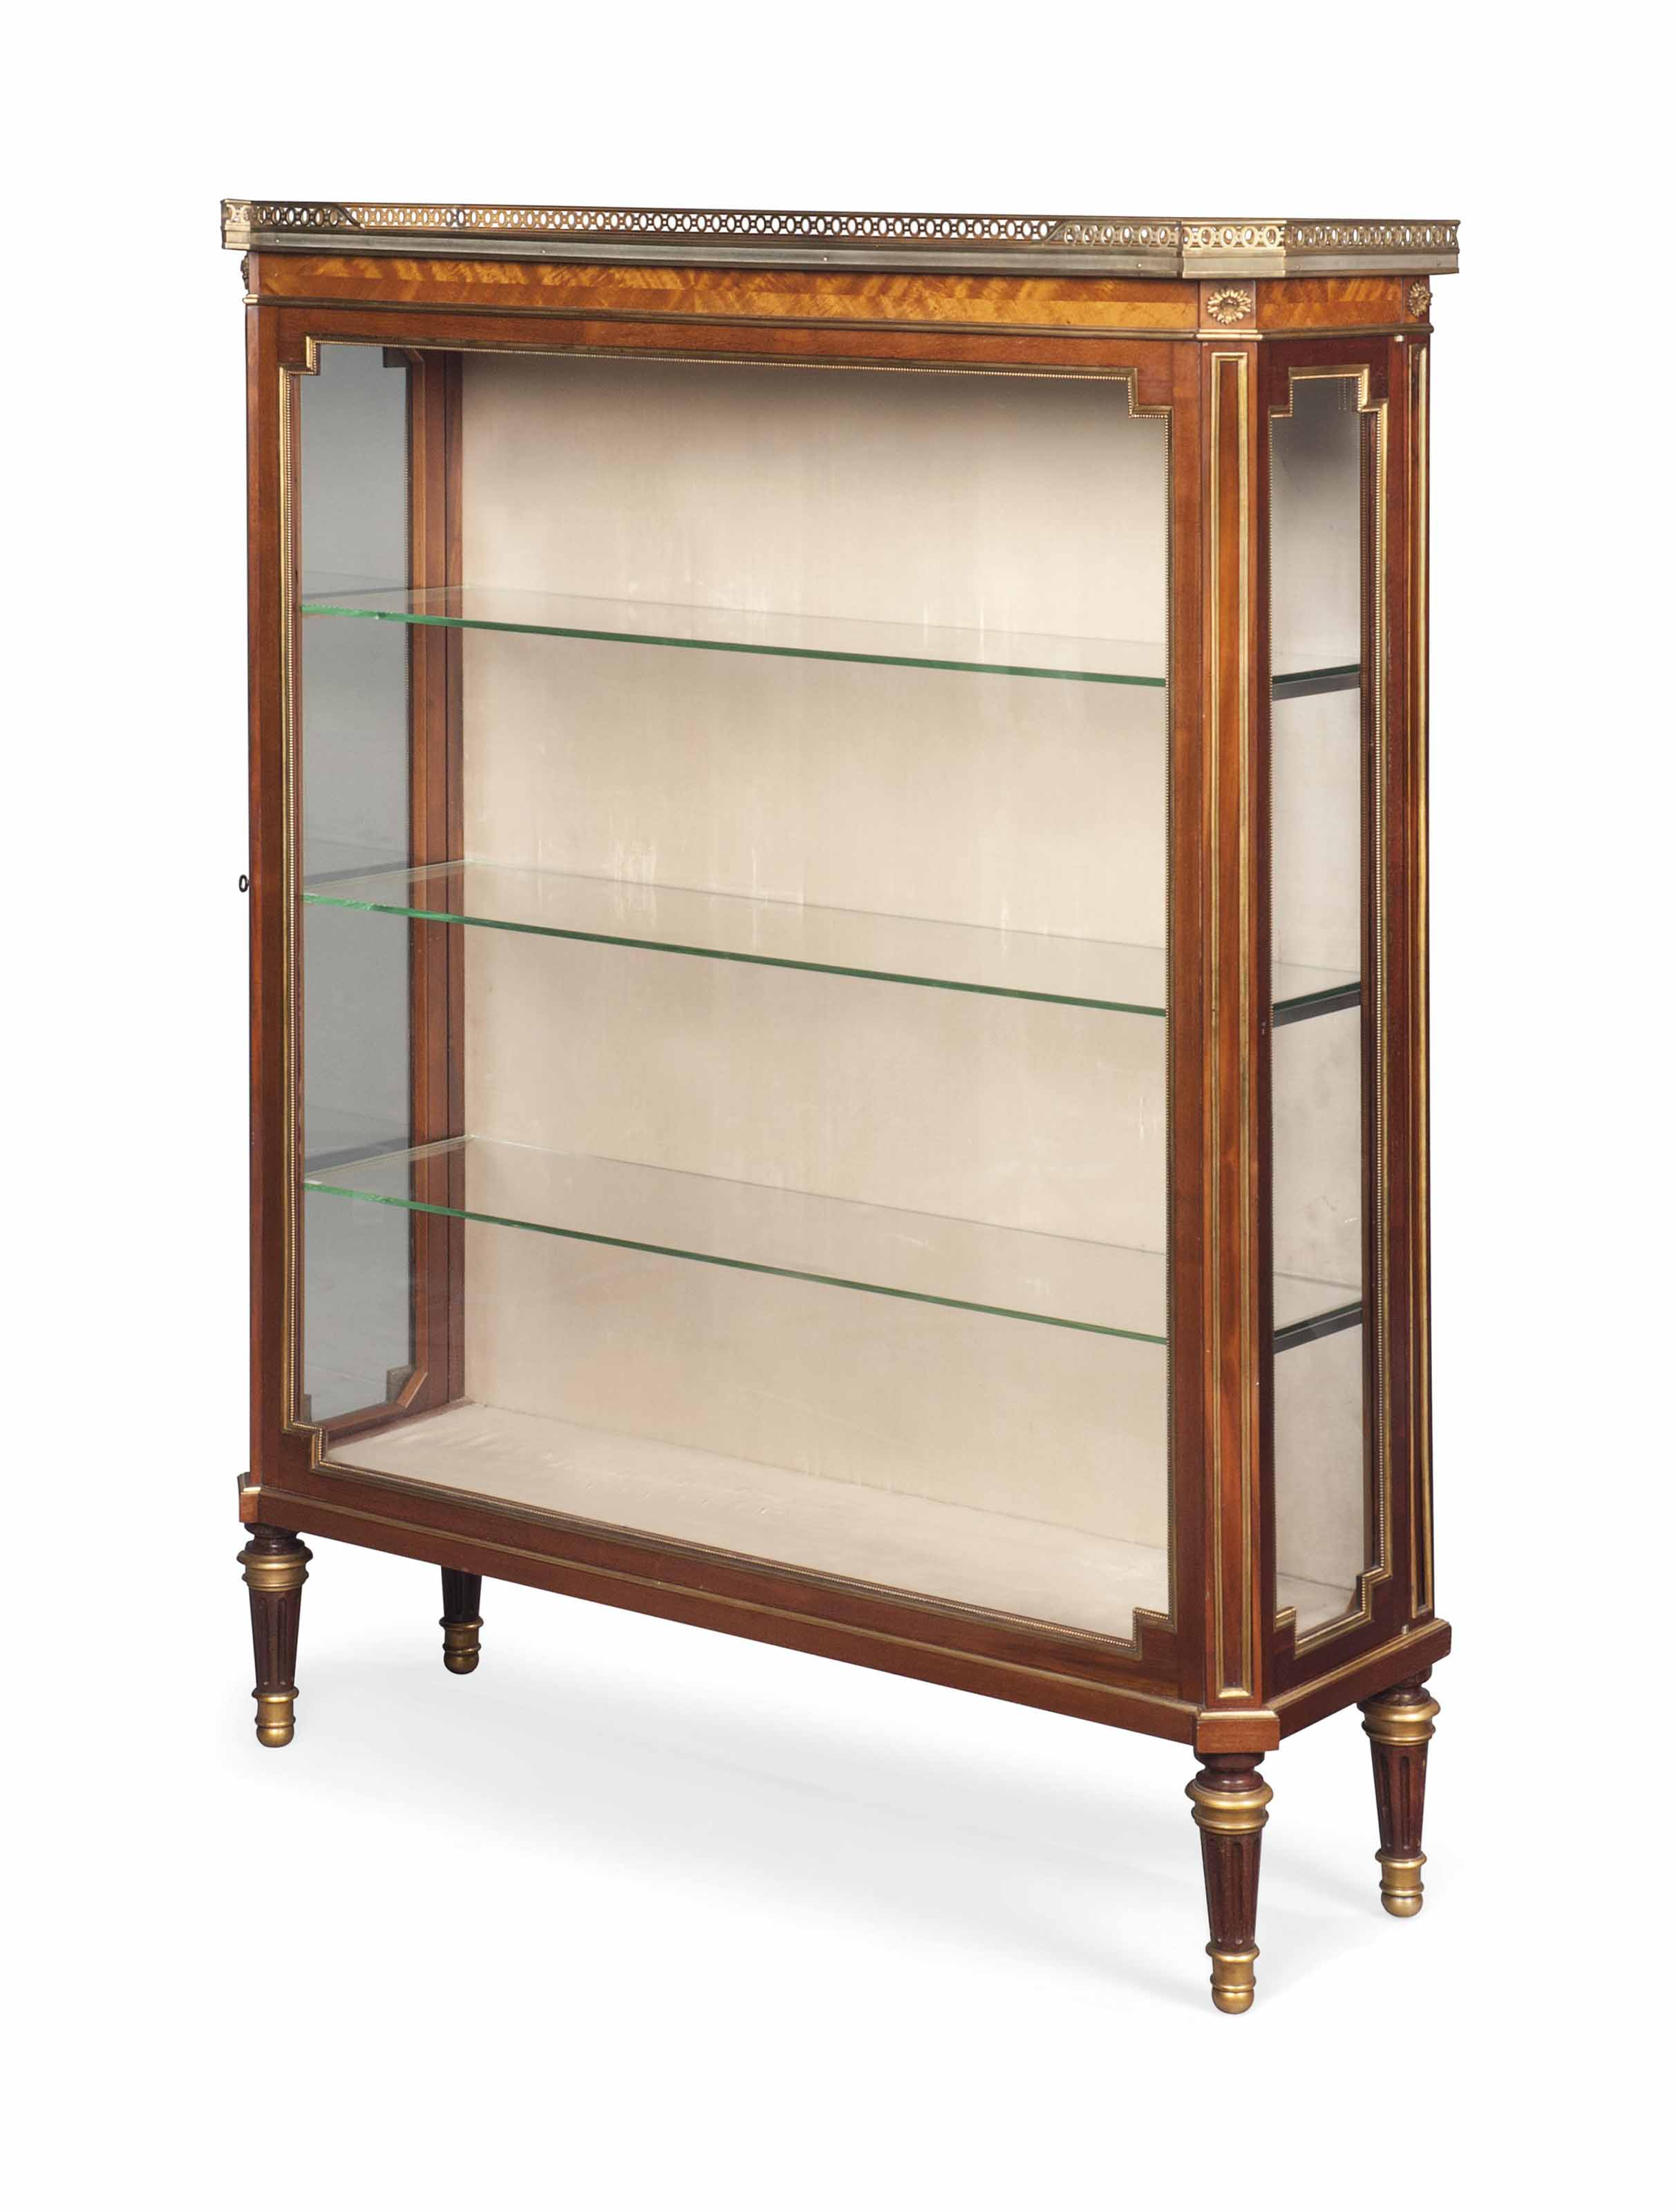 A LATE VICTORIAN BRASS- AND ORMOLU-MOUNTED MAHOGANY DISPLAY CABINET